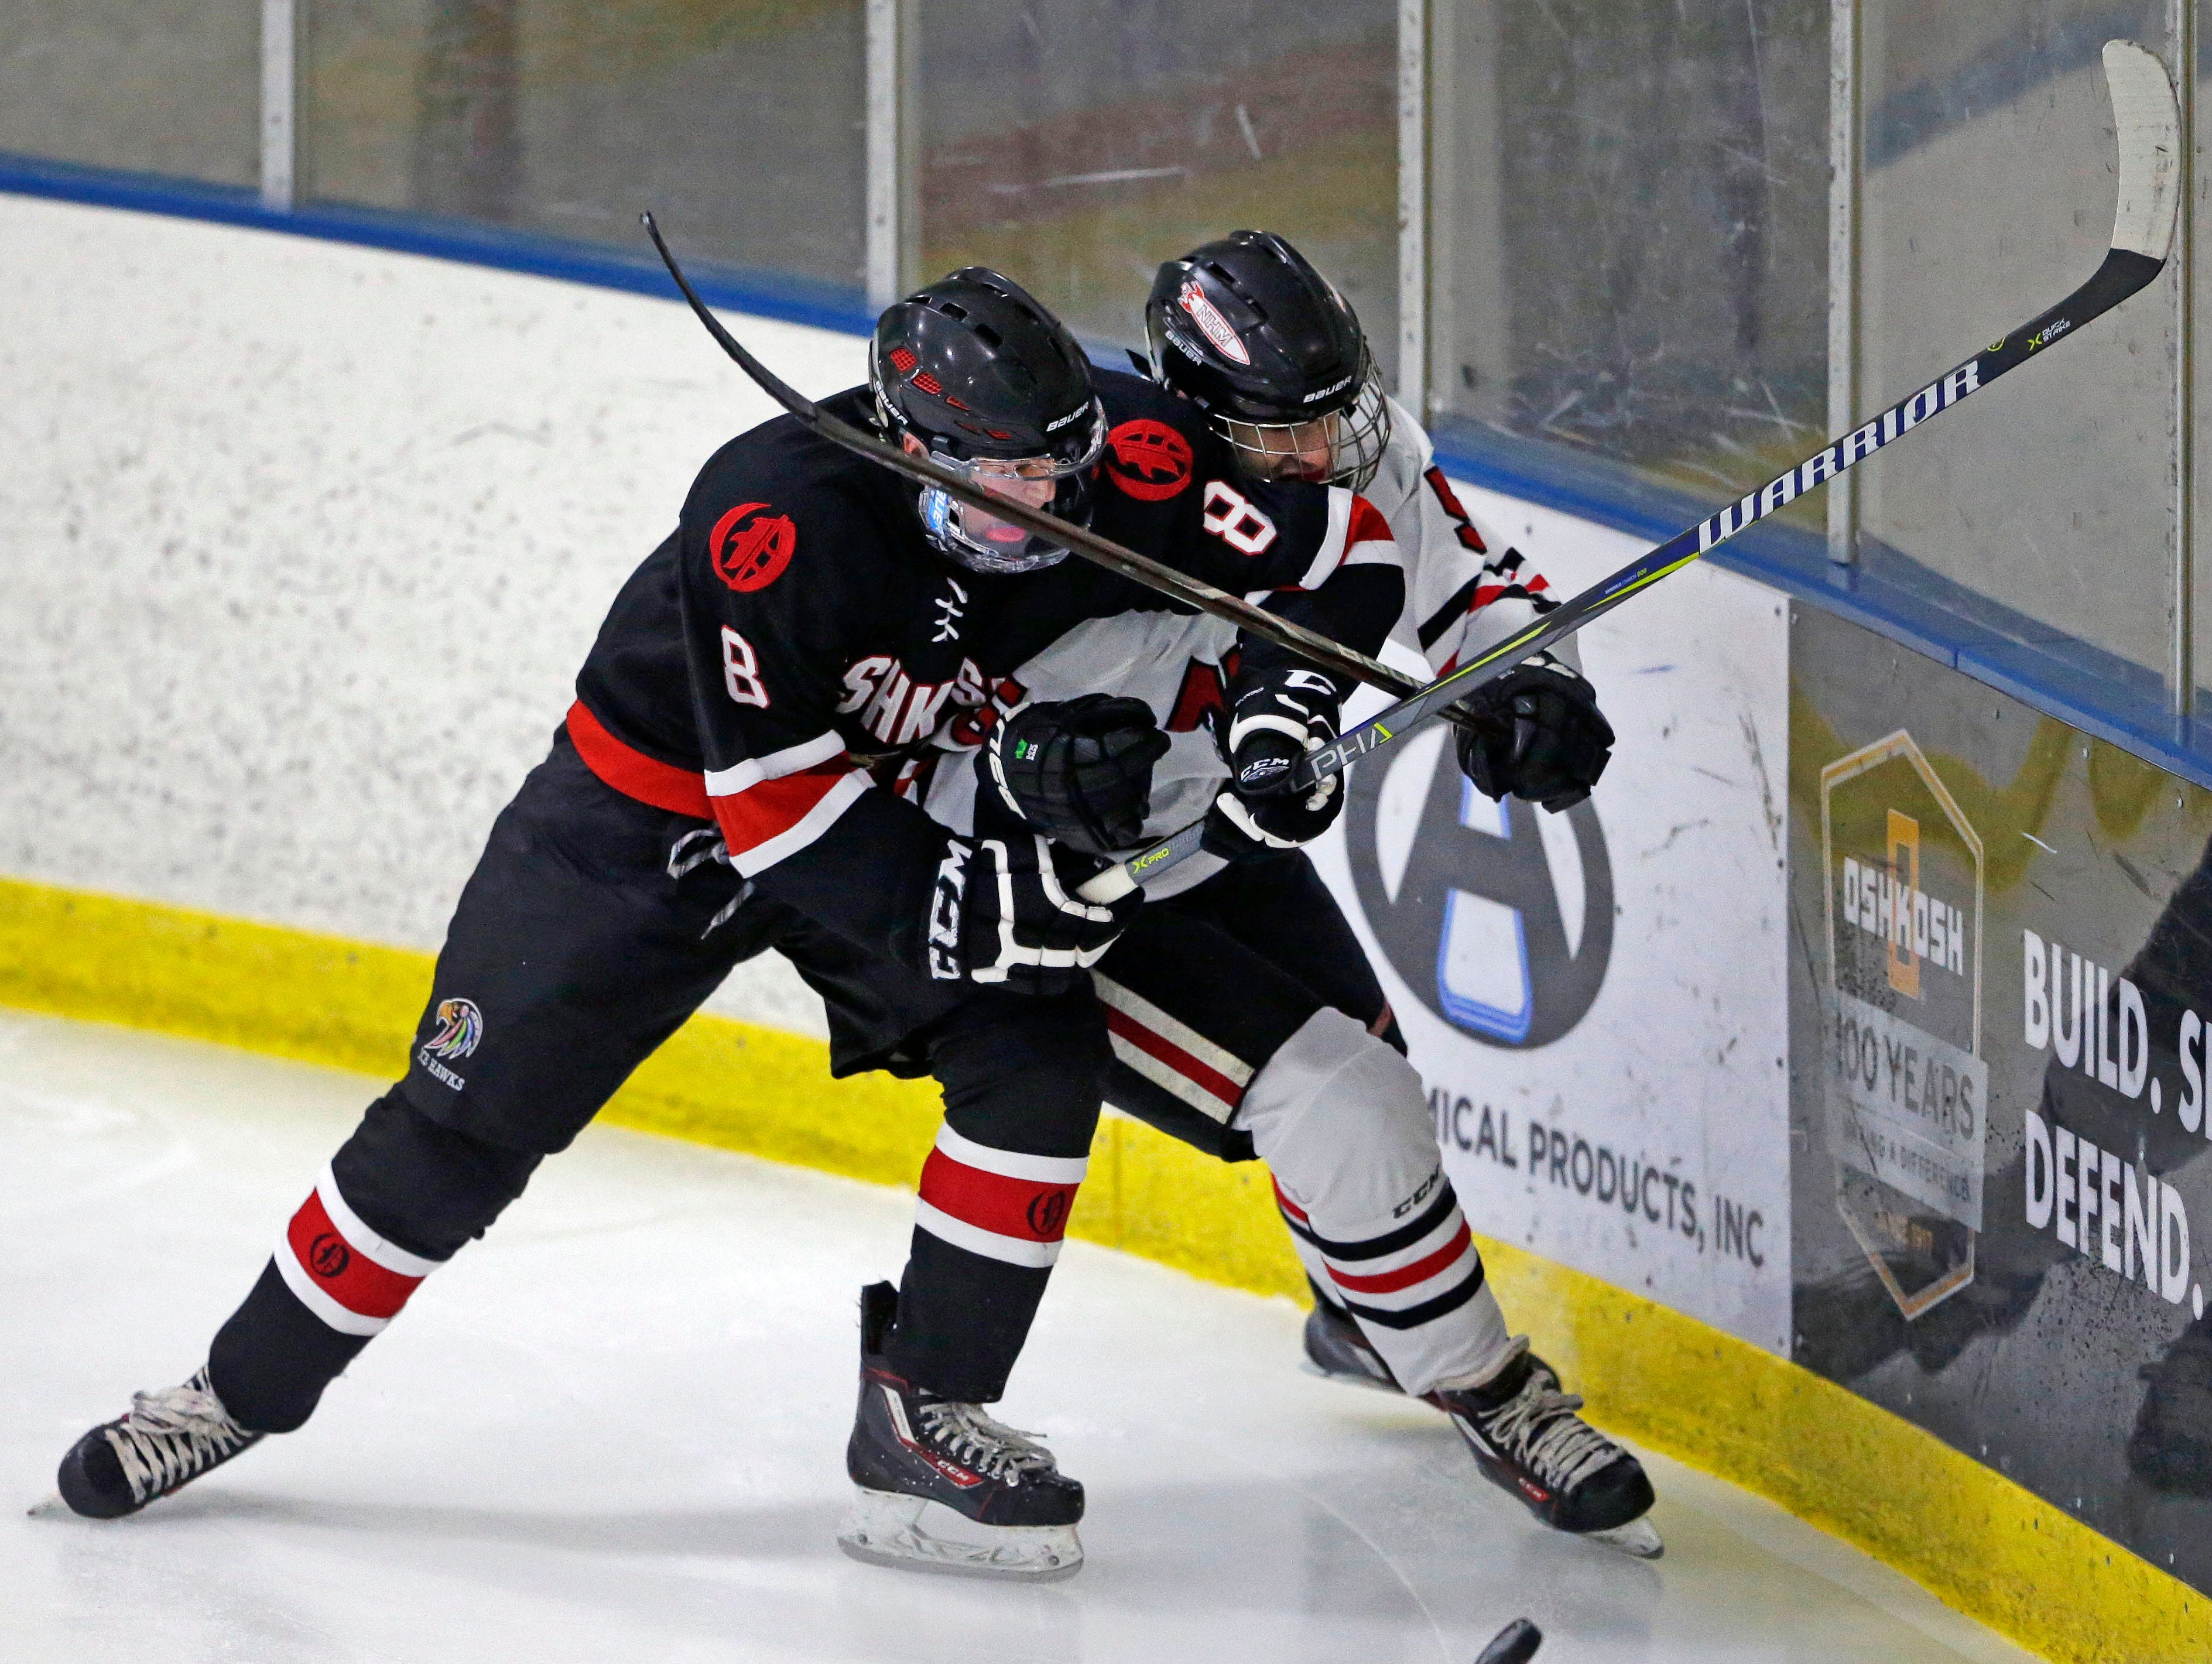 Jacob Sprister of Oshkosh and Aaron Nussbaum of Neenah/Hortonville/Menasha battle for the puck in a Badgerland Conference hockey game Tuesday, December 4, 2018, at Tri-County Ice Arena in Fox Crossing, Wis.Ron Page/USA TODAY NETWORK-Wisconsin